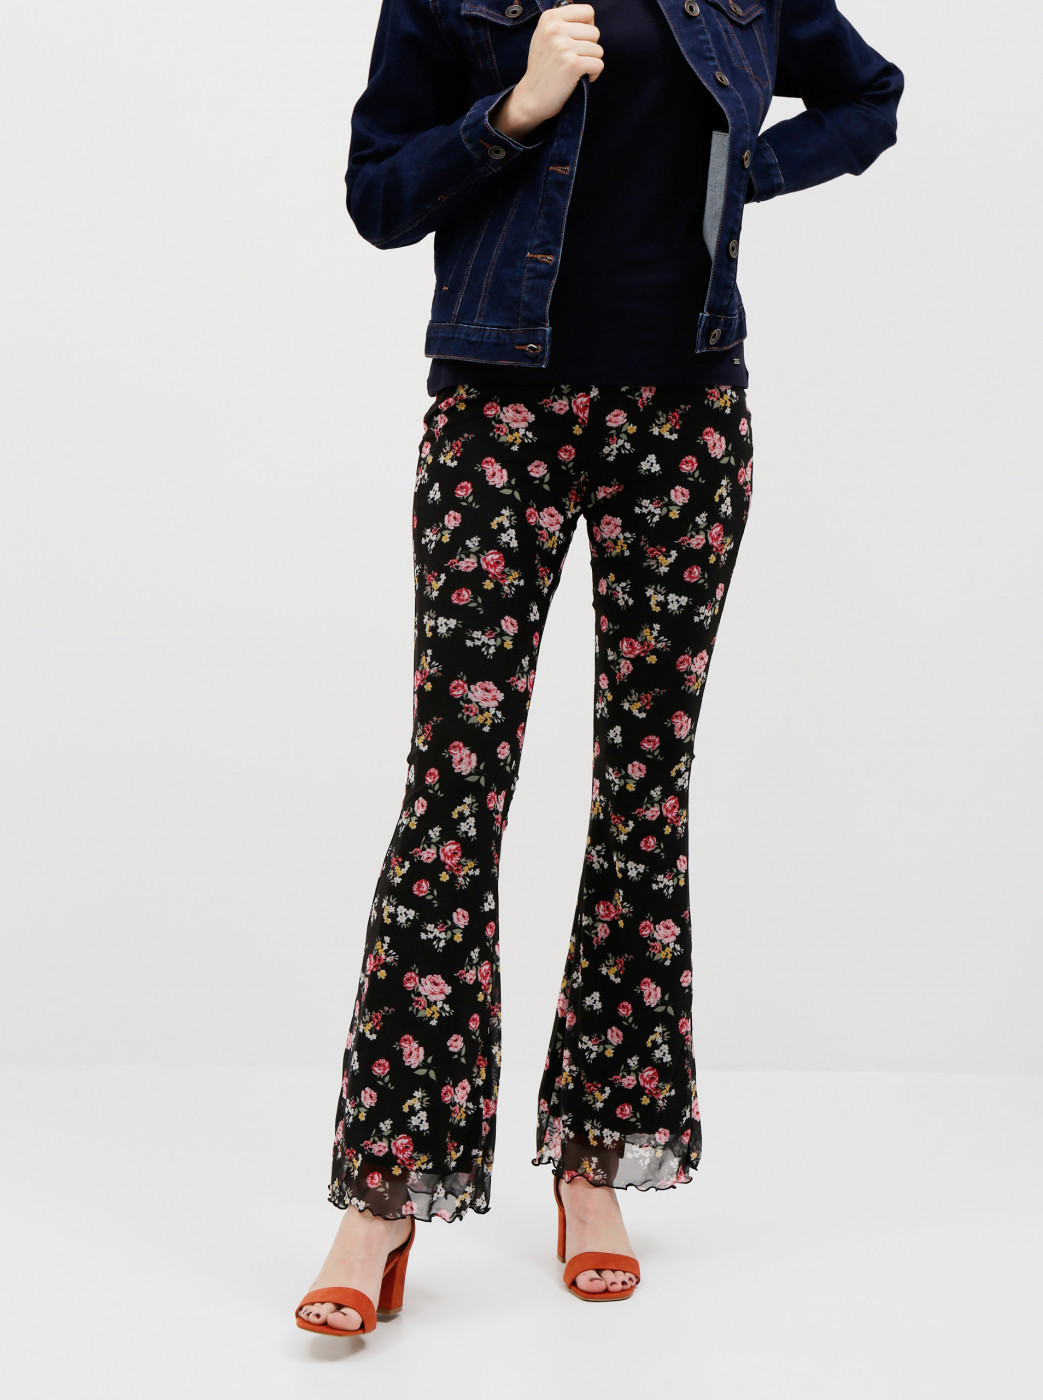 Tally WEiJL Black Floral Flared Fit Pants